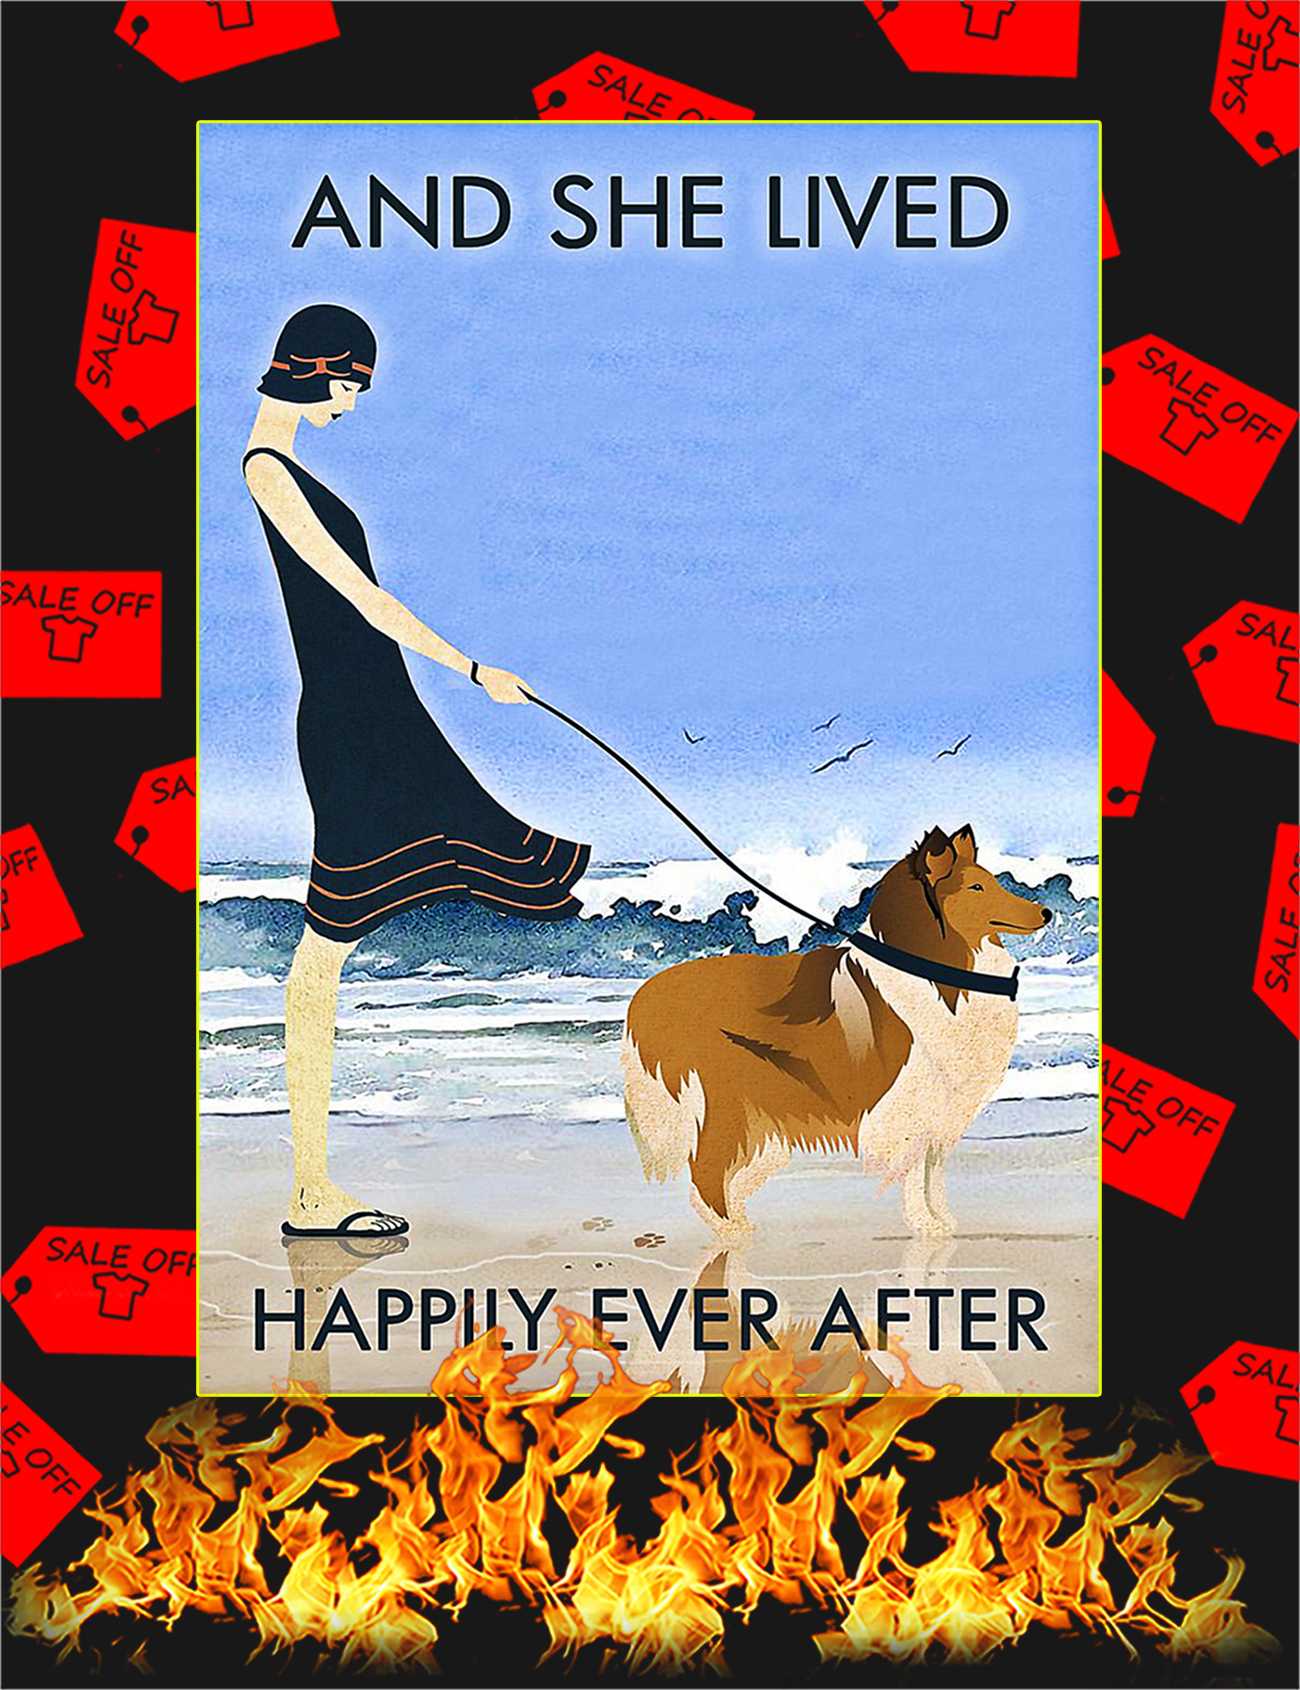 Beach and collie dog and she lived happily ever after poster - A1